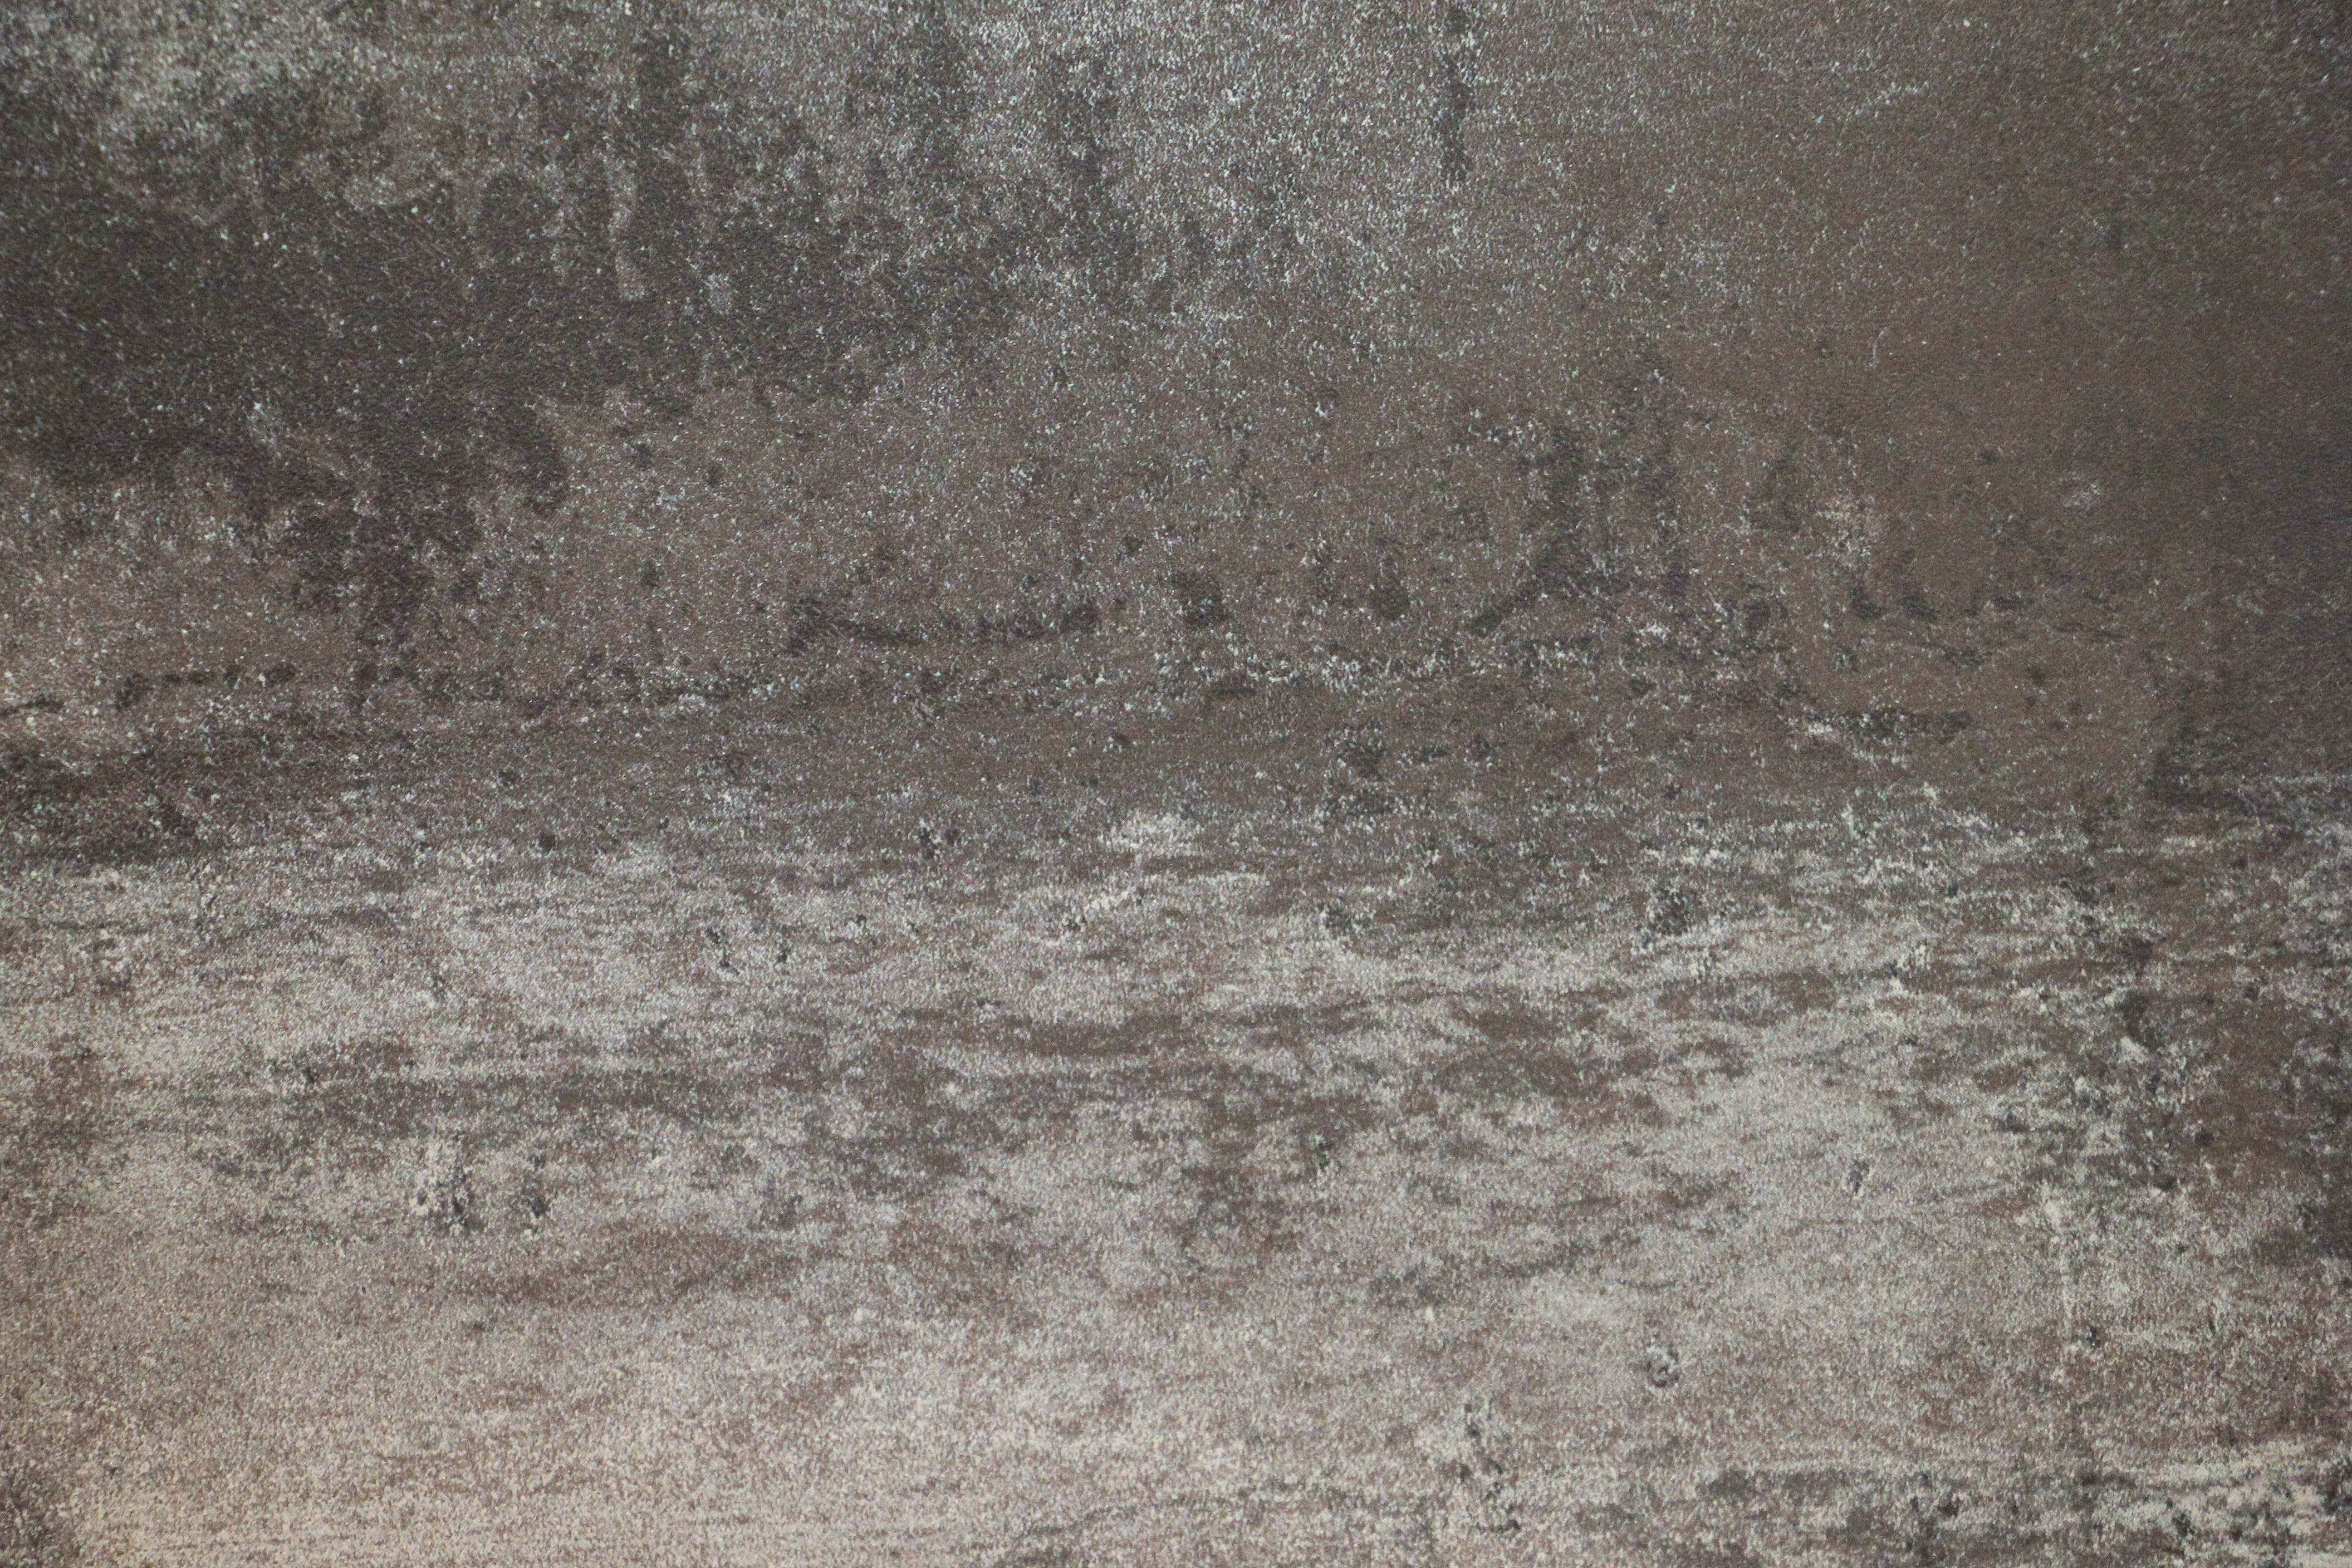 Grunge textures archives page 9 of 14 texturex free for Flooring surfaces